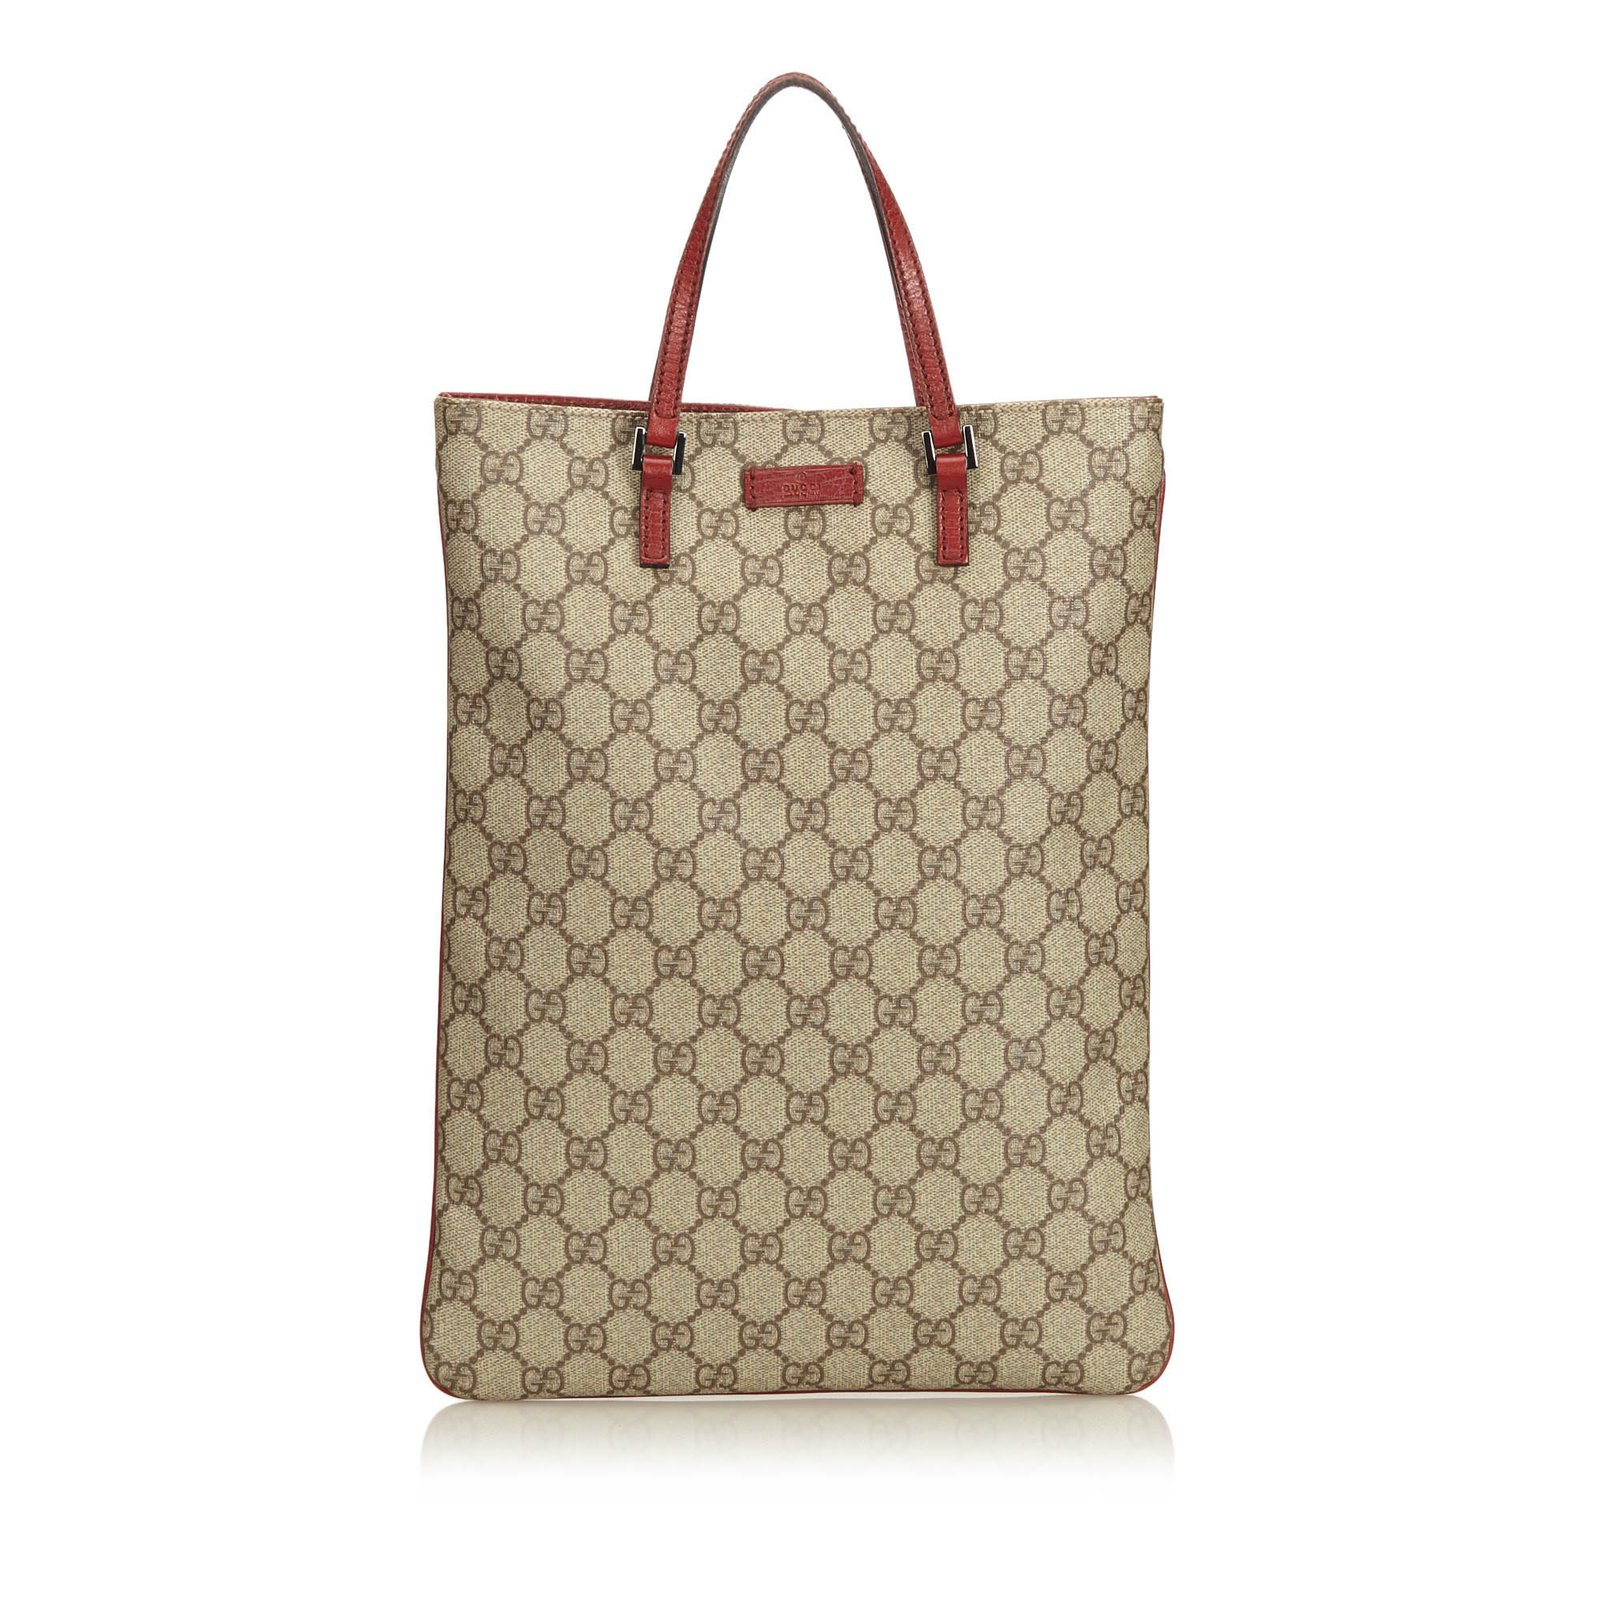 8f8dc88d903d Gucci Guccissima Supreme Coated Canvas Tote Bag Totes  Leather,Other,Cloth,Cloth Brown